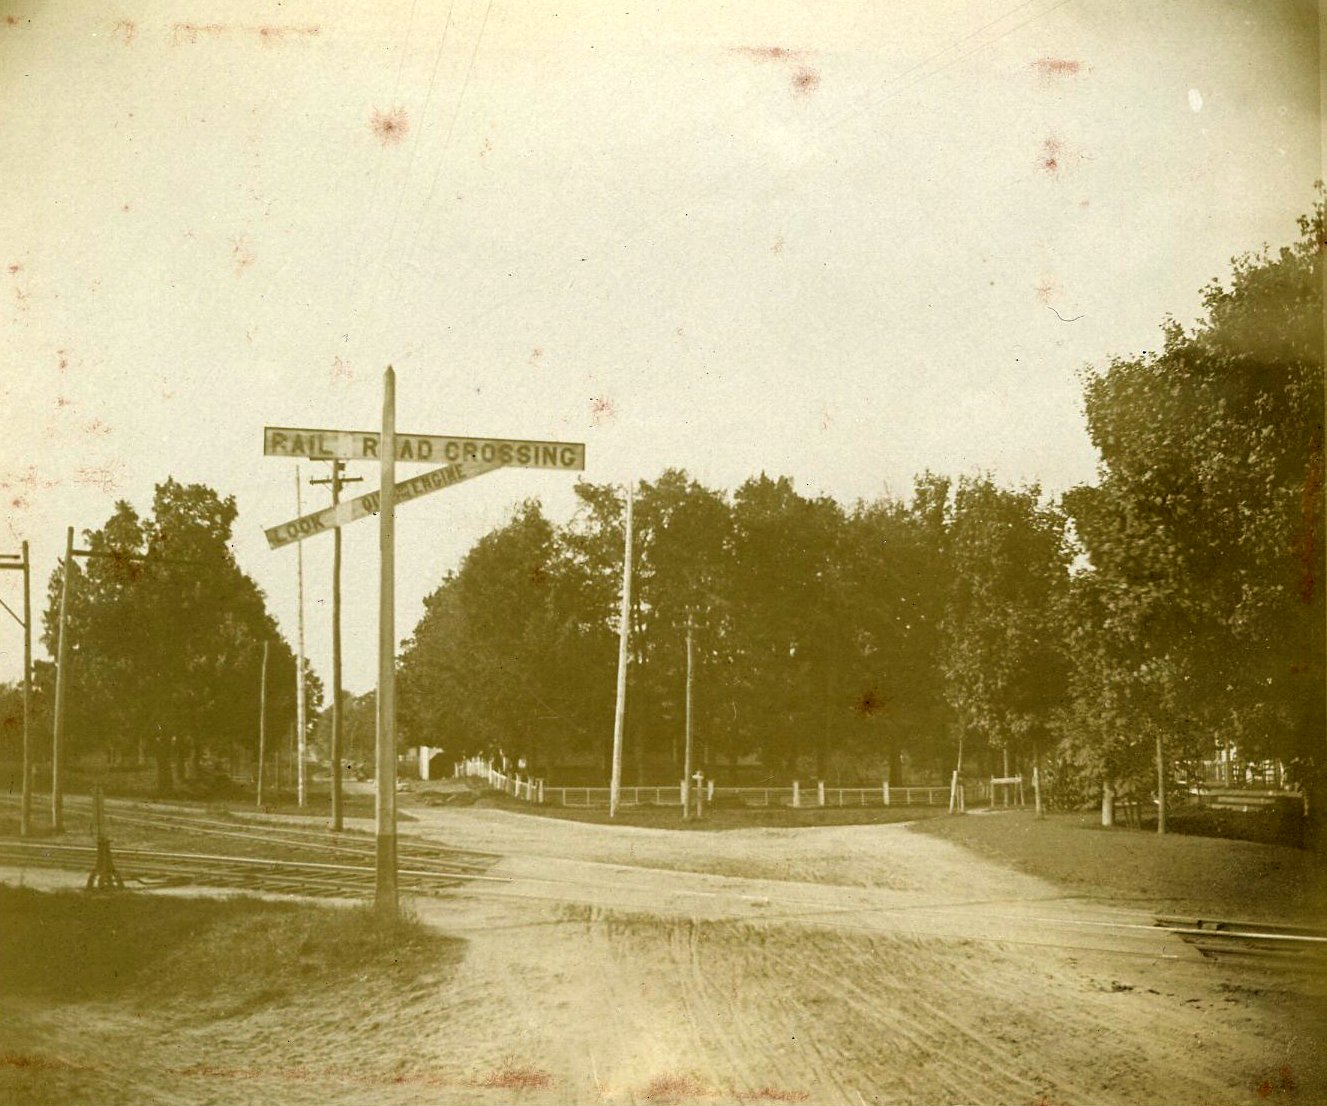 Photograph of railroad tracks and crossing.  In the background is Perkins Manor (partially obscured by trees).